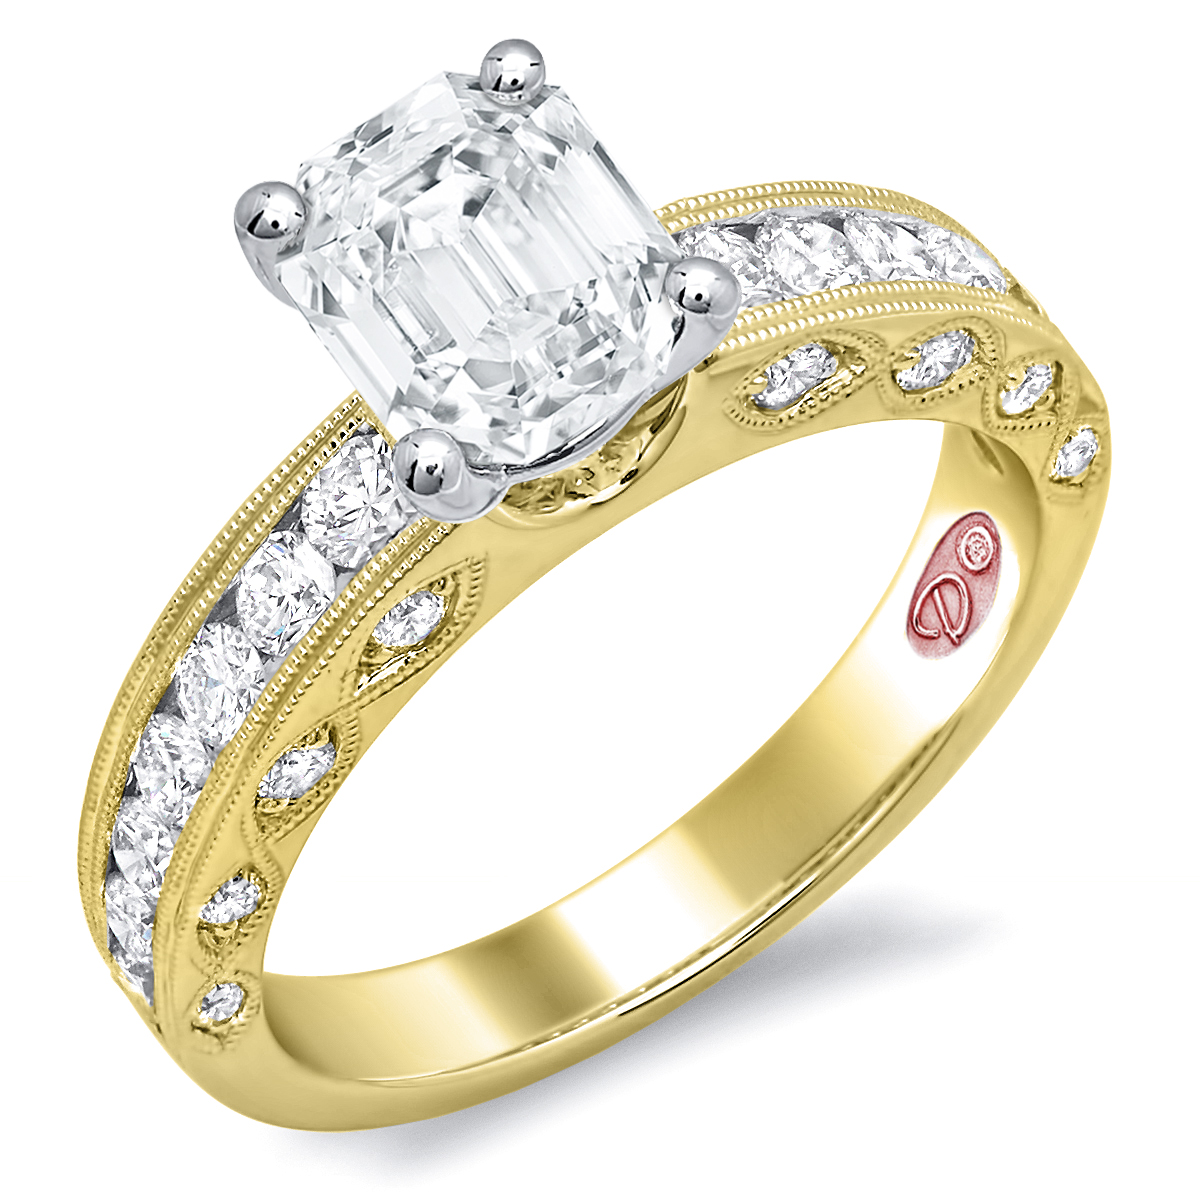 Unique Engagement Rings - DW6160